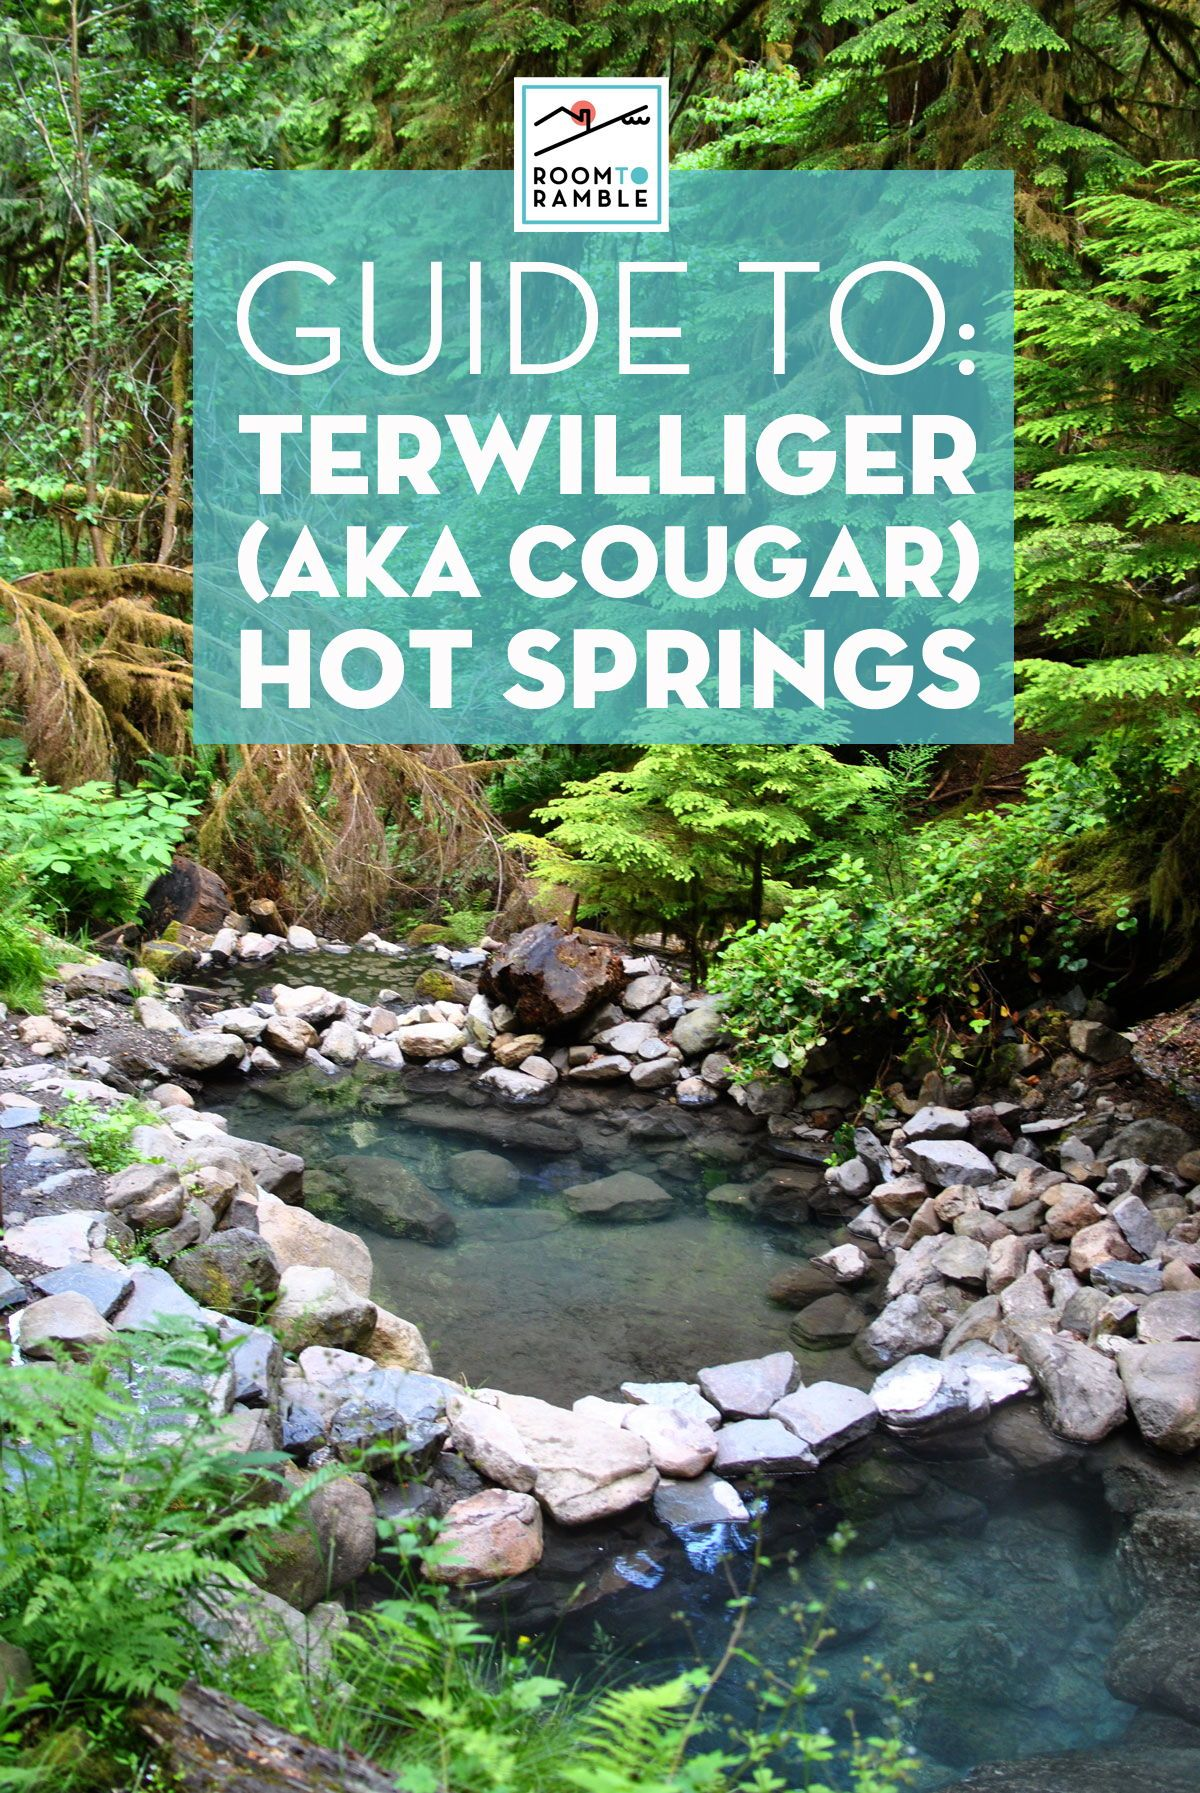 guide to terwilliger hot springs, cougar hot springs tips, places to